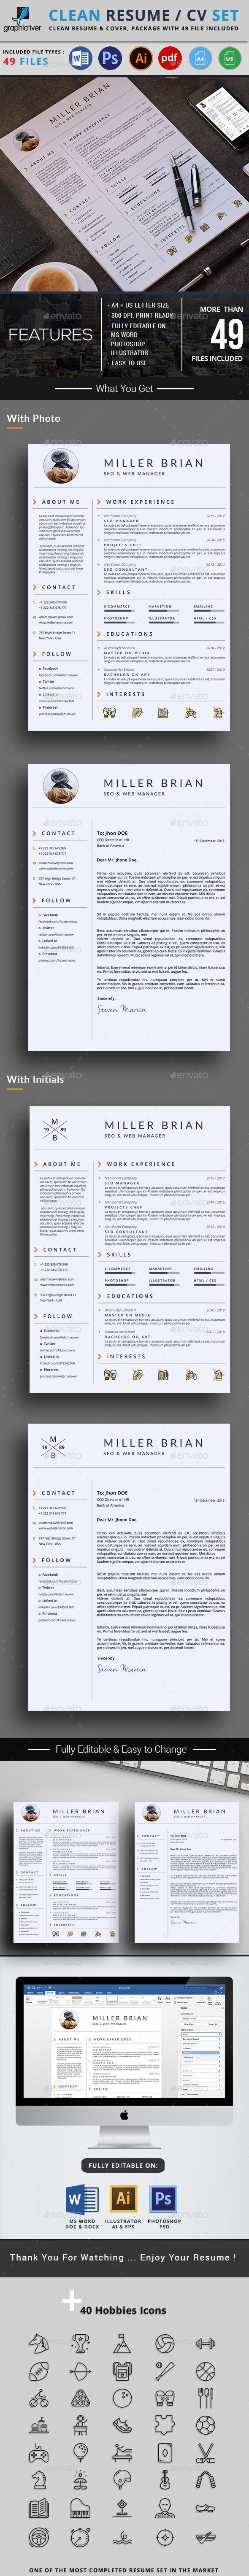 how to do a cover letter with no name%0A Modern professional resume and cover letter templates in A  and US letter  formats  Flexible and